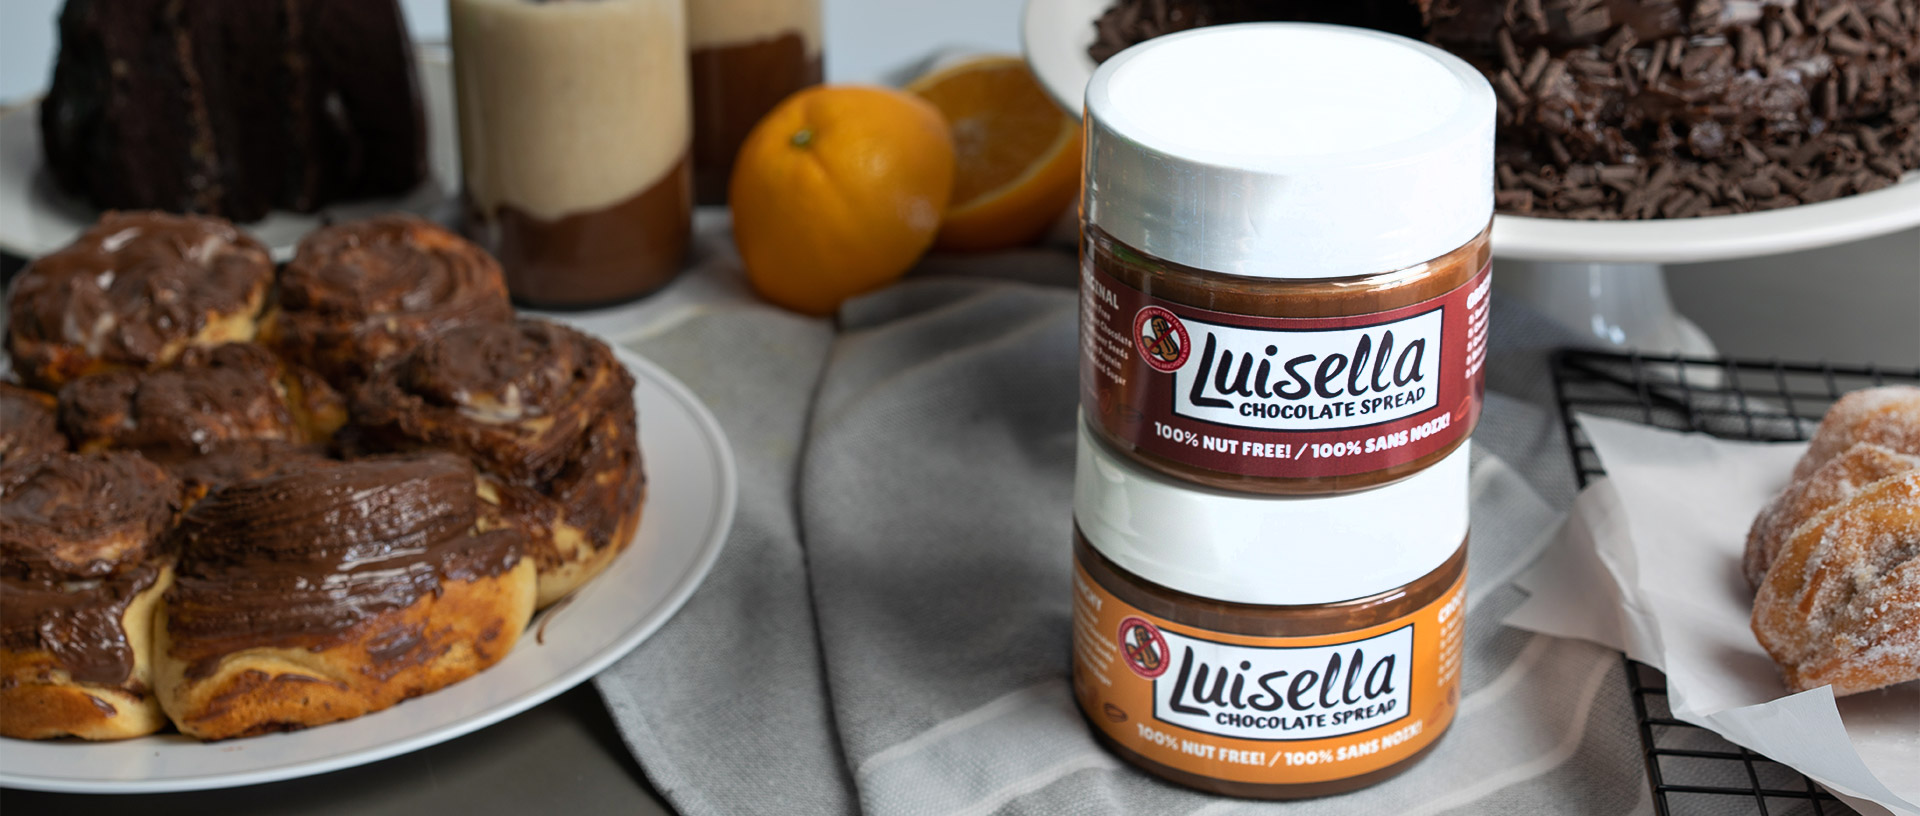 Luisella Chocolate Spread | 100% Nut Free Spread